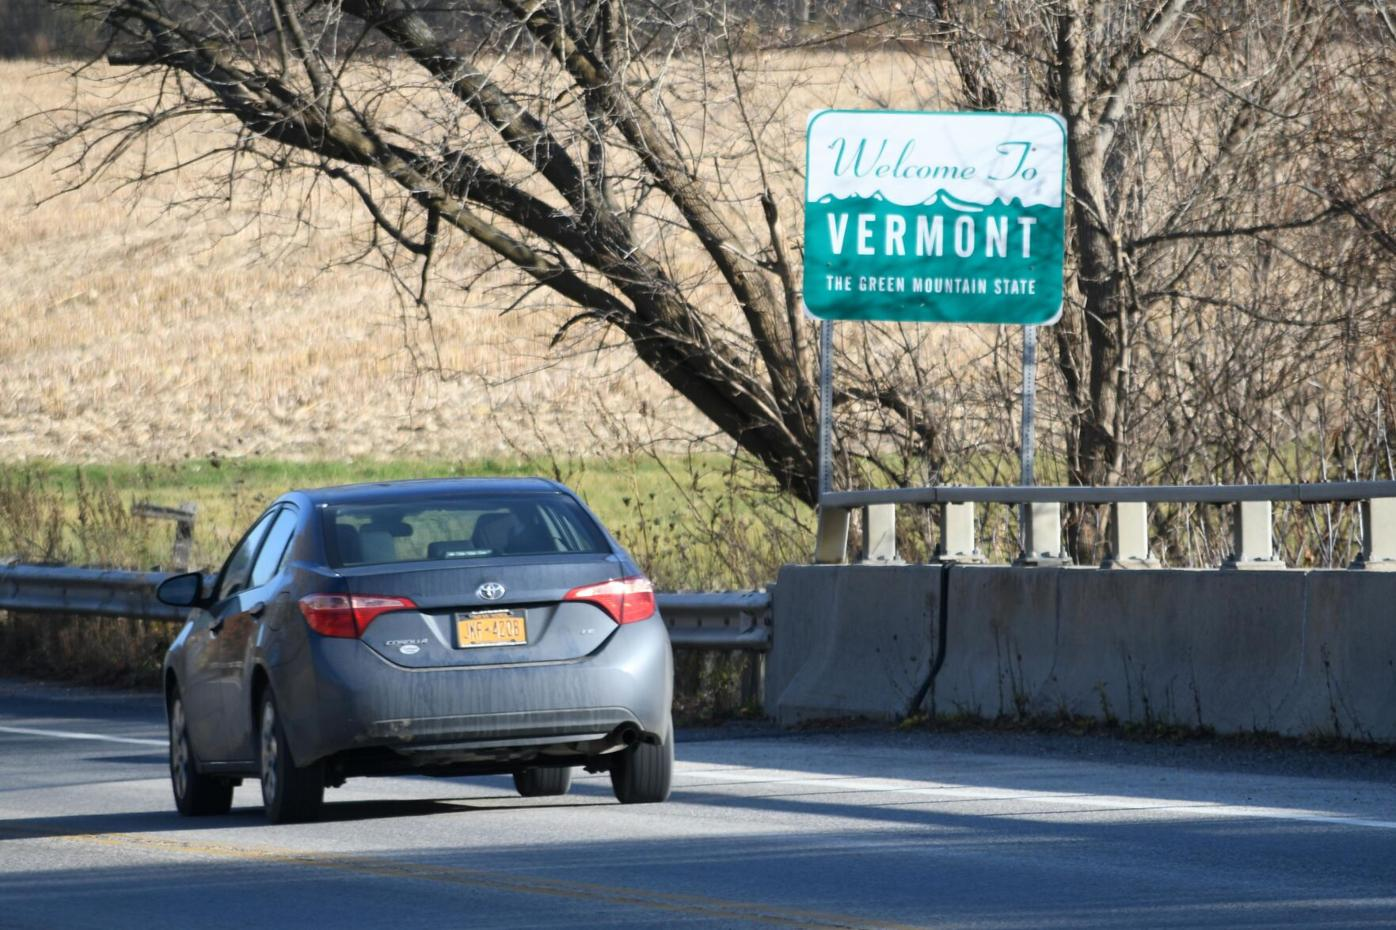 Vermont new travel restrictions